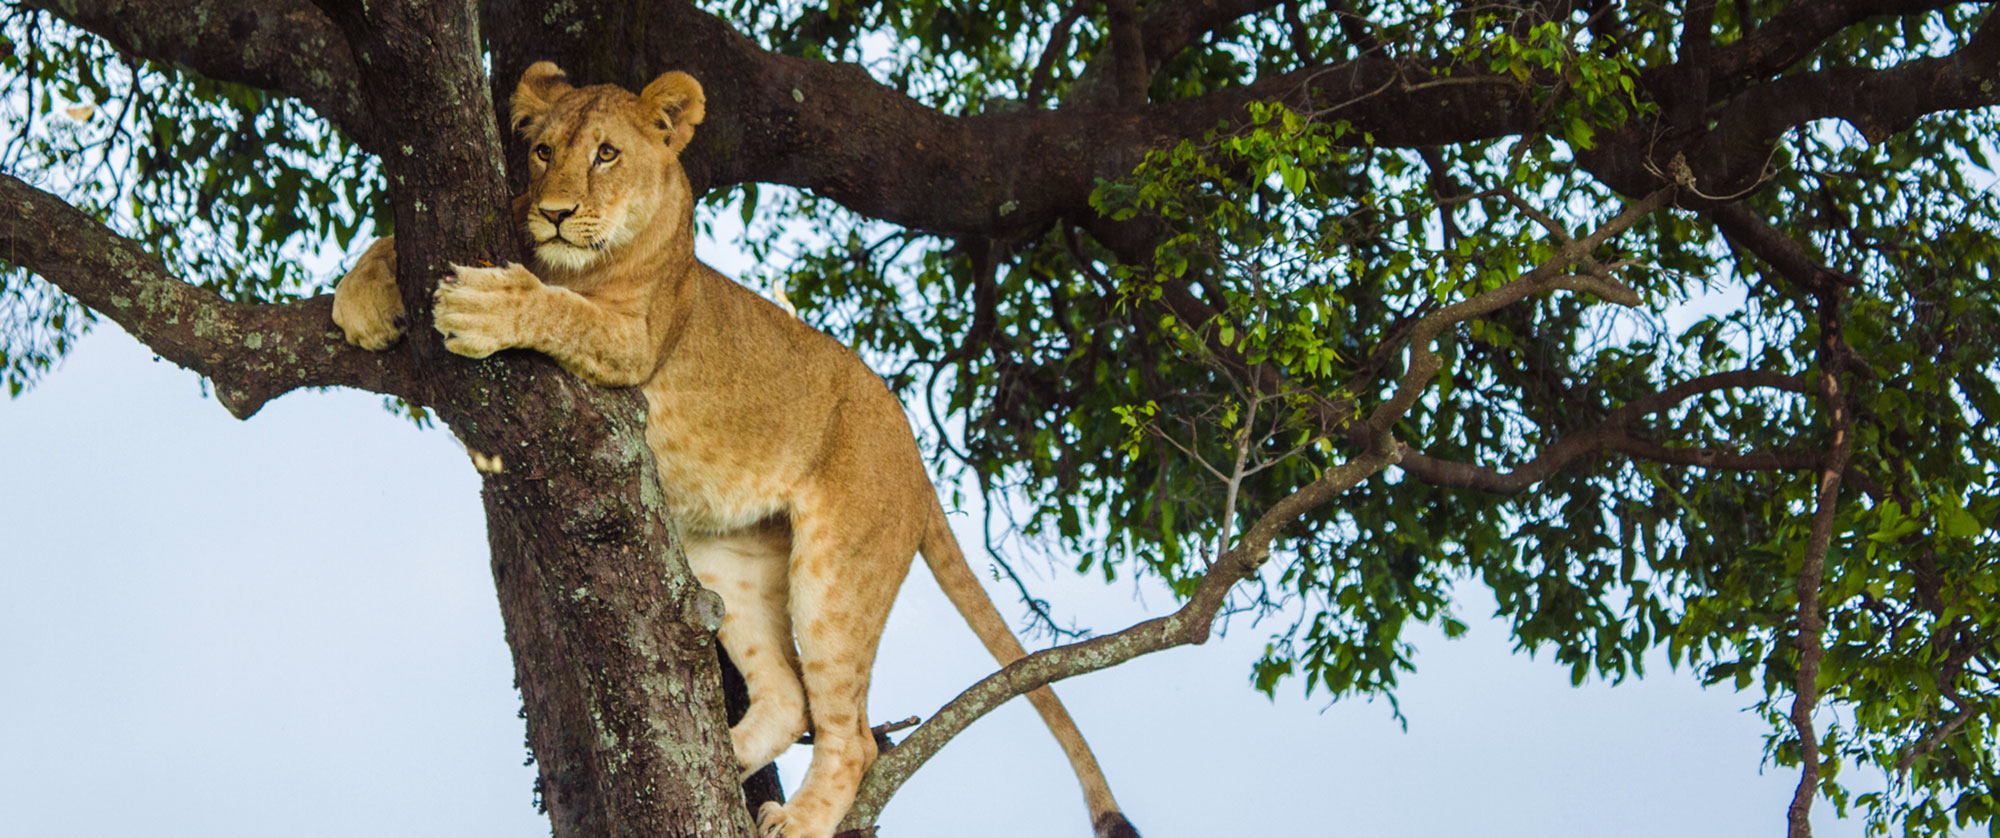 Luxury Kenya Vacation Packages - Best Safari Lodges Kenya, Big 5 Safari, Tree Climbing Lion on Game Drive